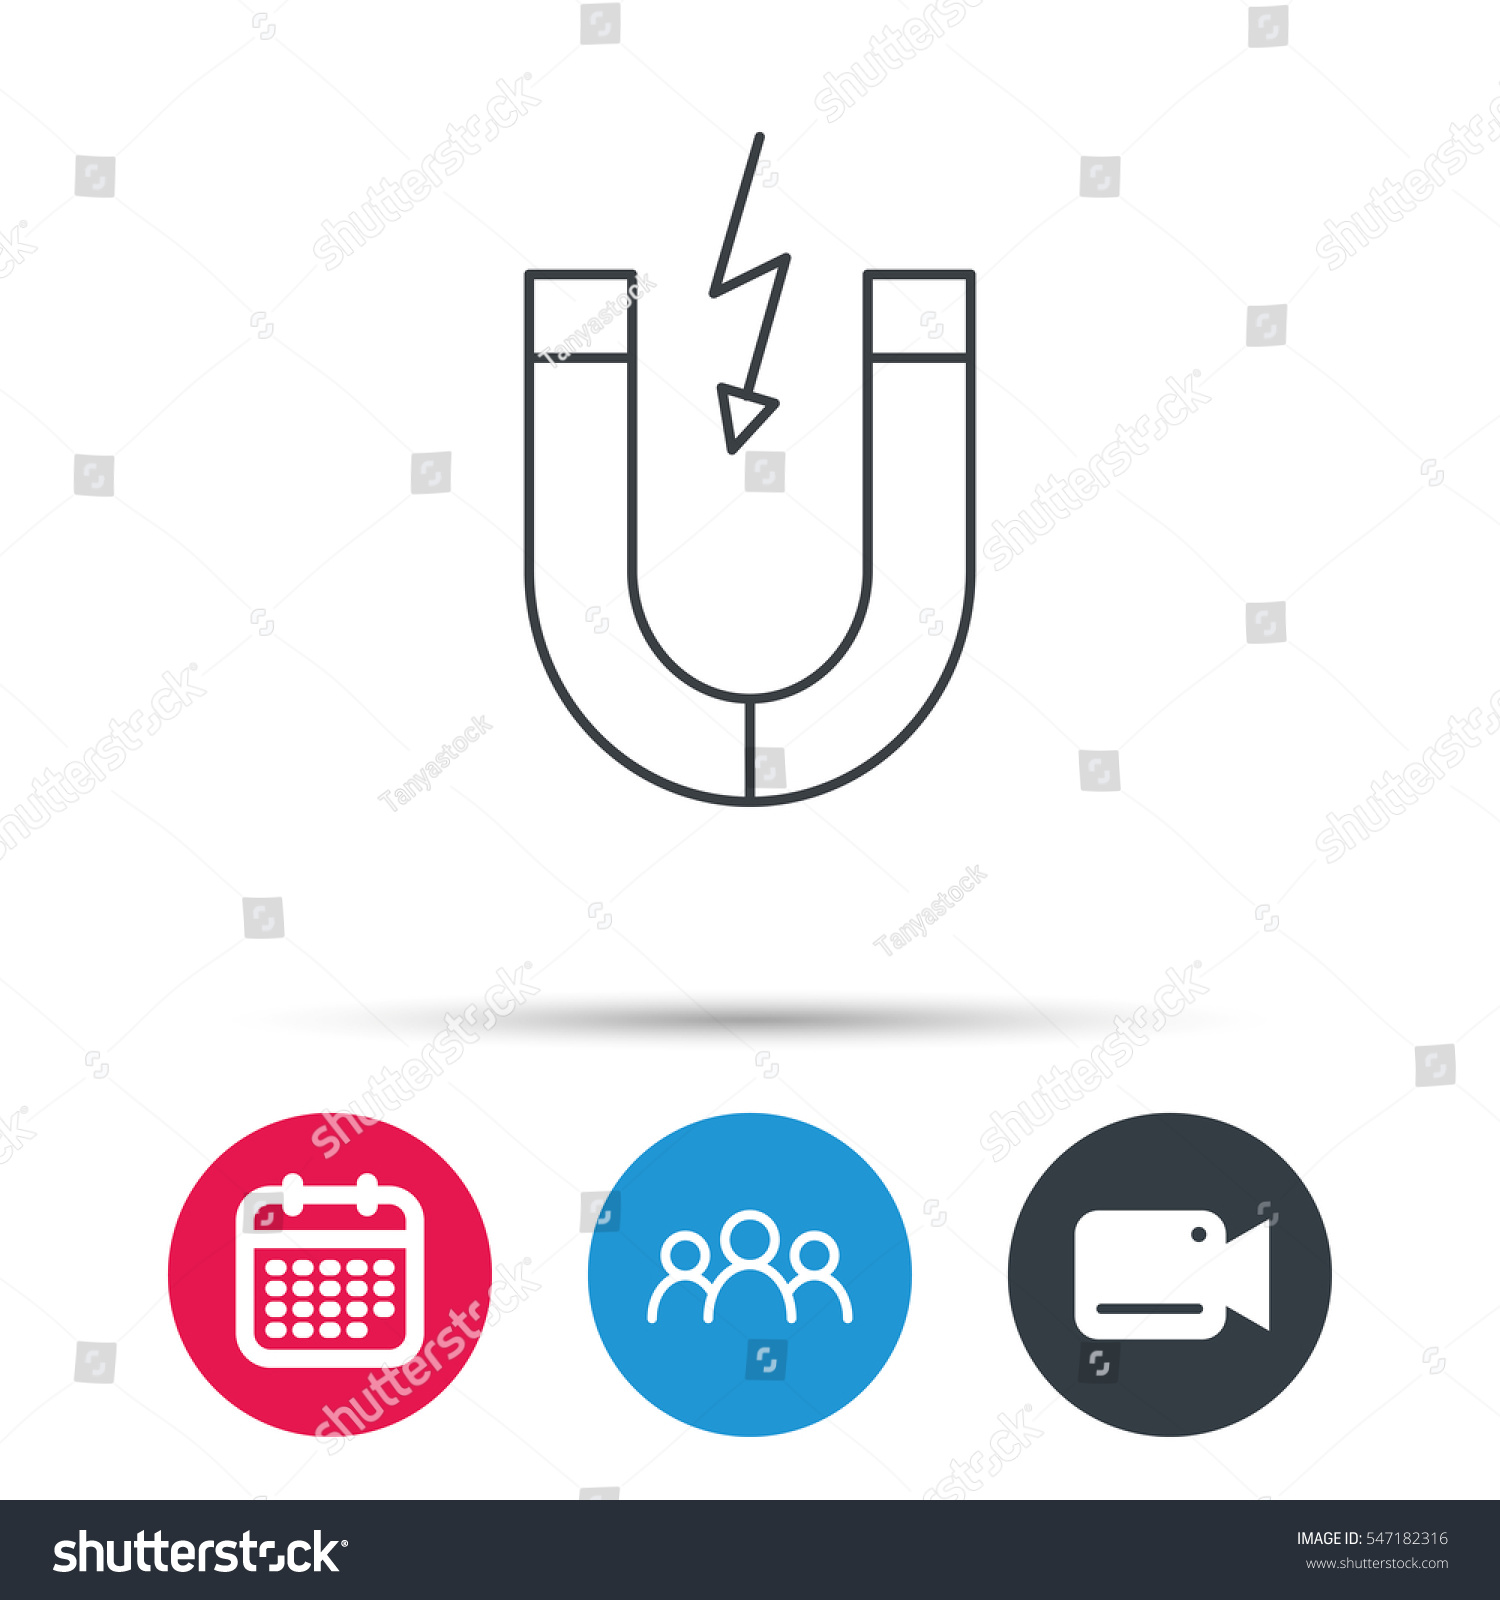 magnet icon magnetic power sign physics stock vector